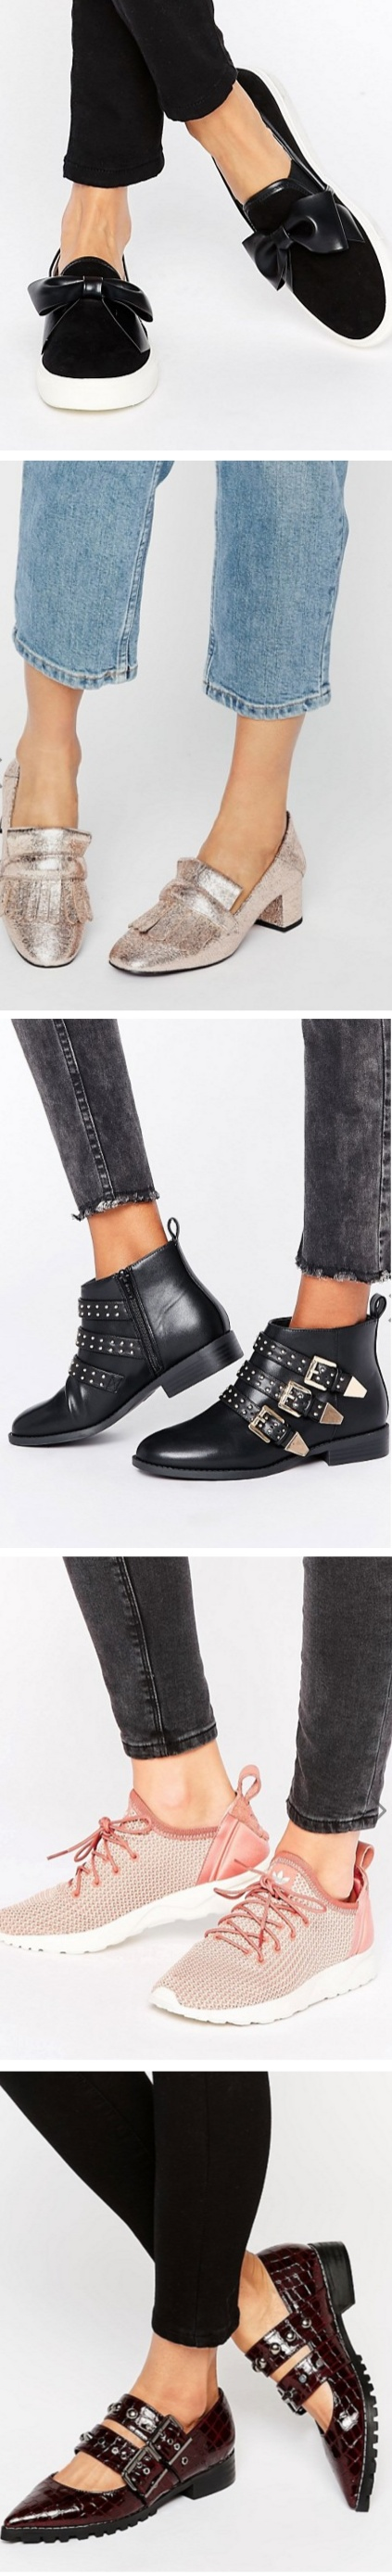 asos-shoes